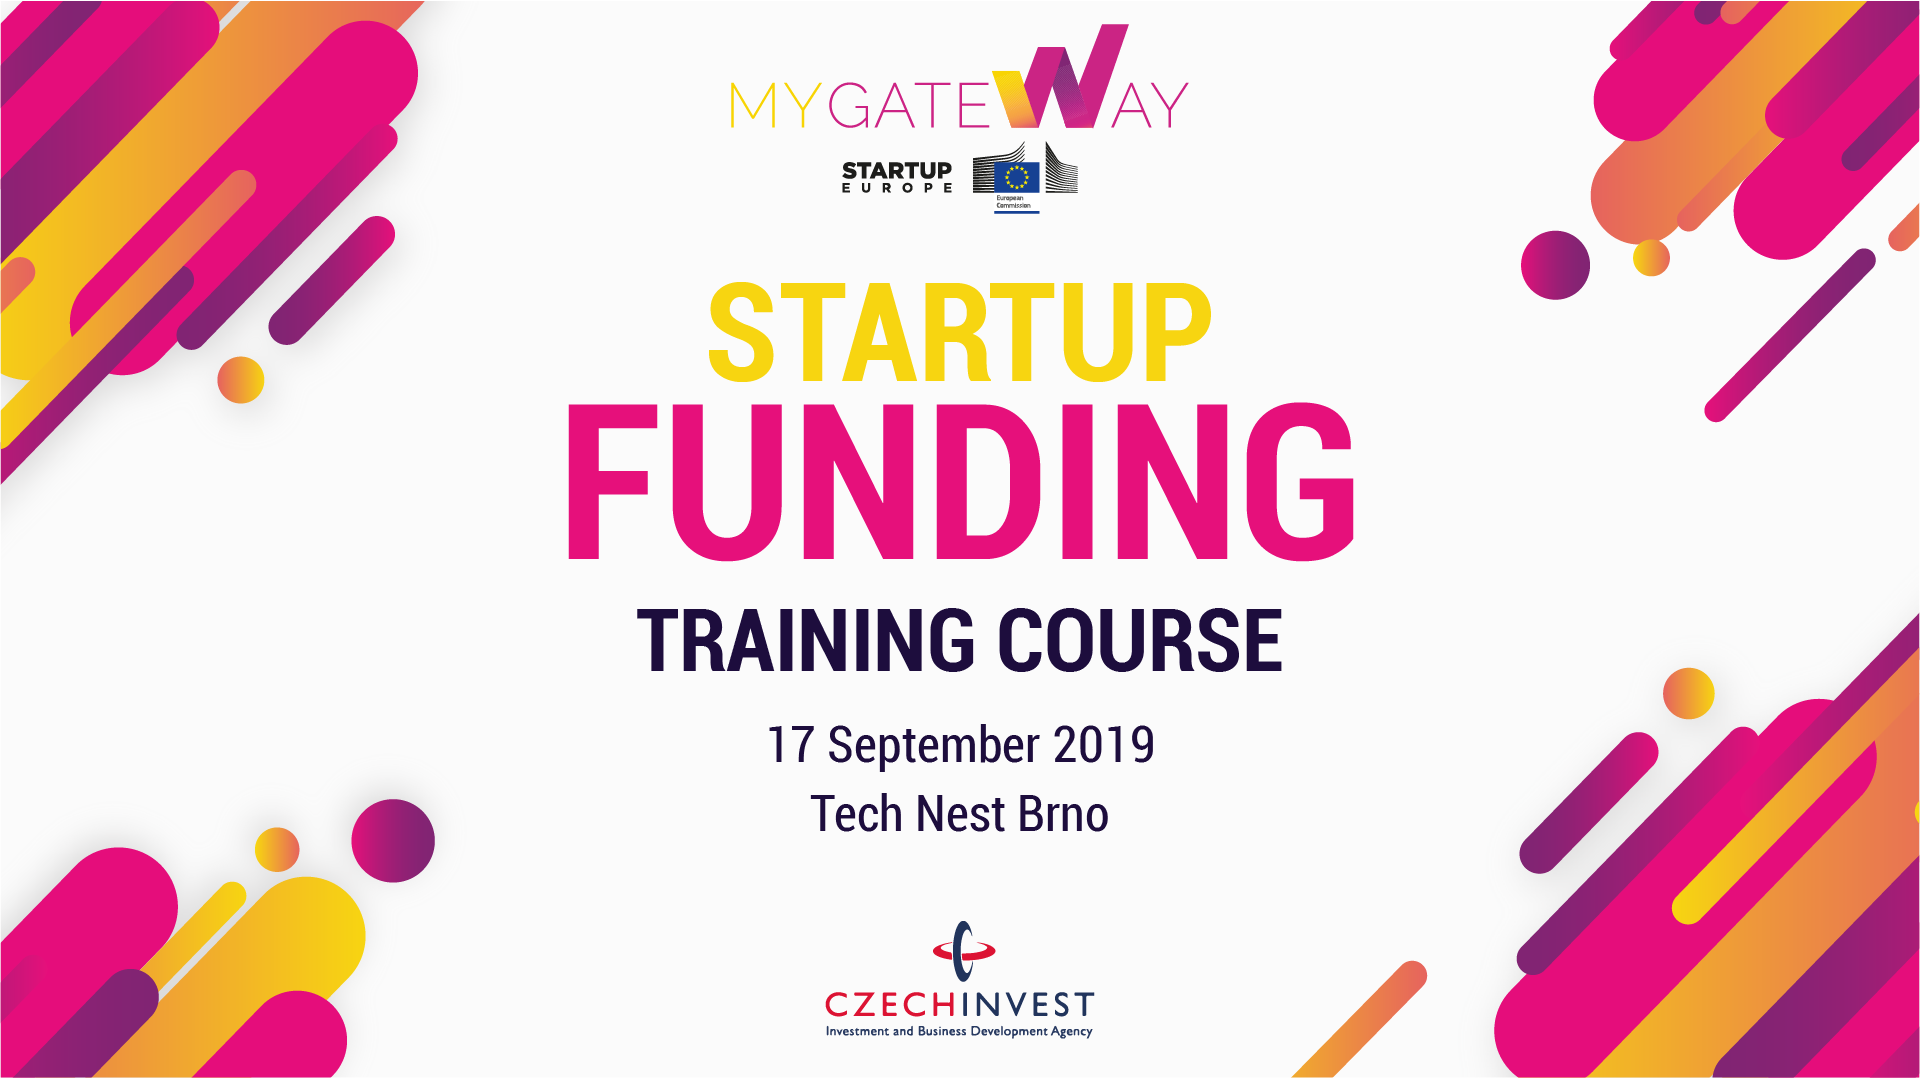 Startup Funding Training Course in Brno, Czech Republic